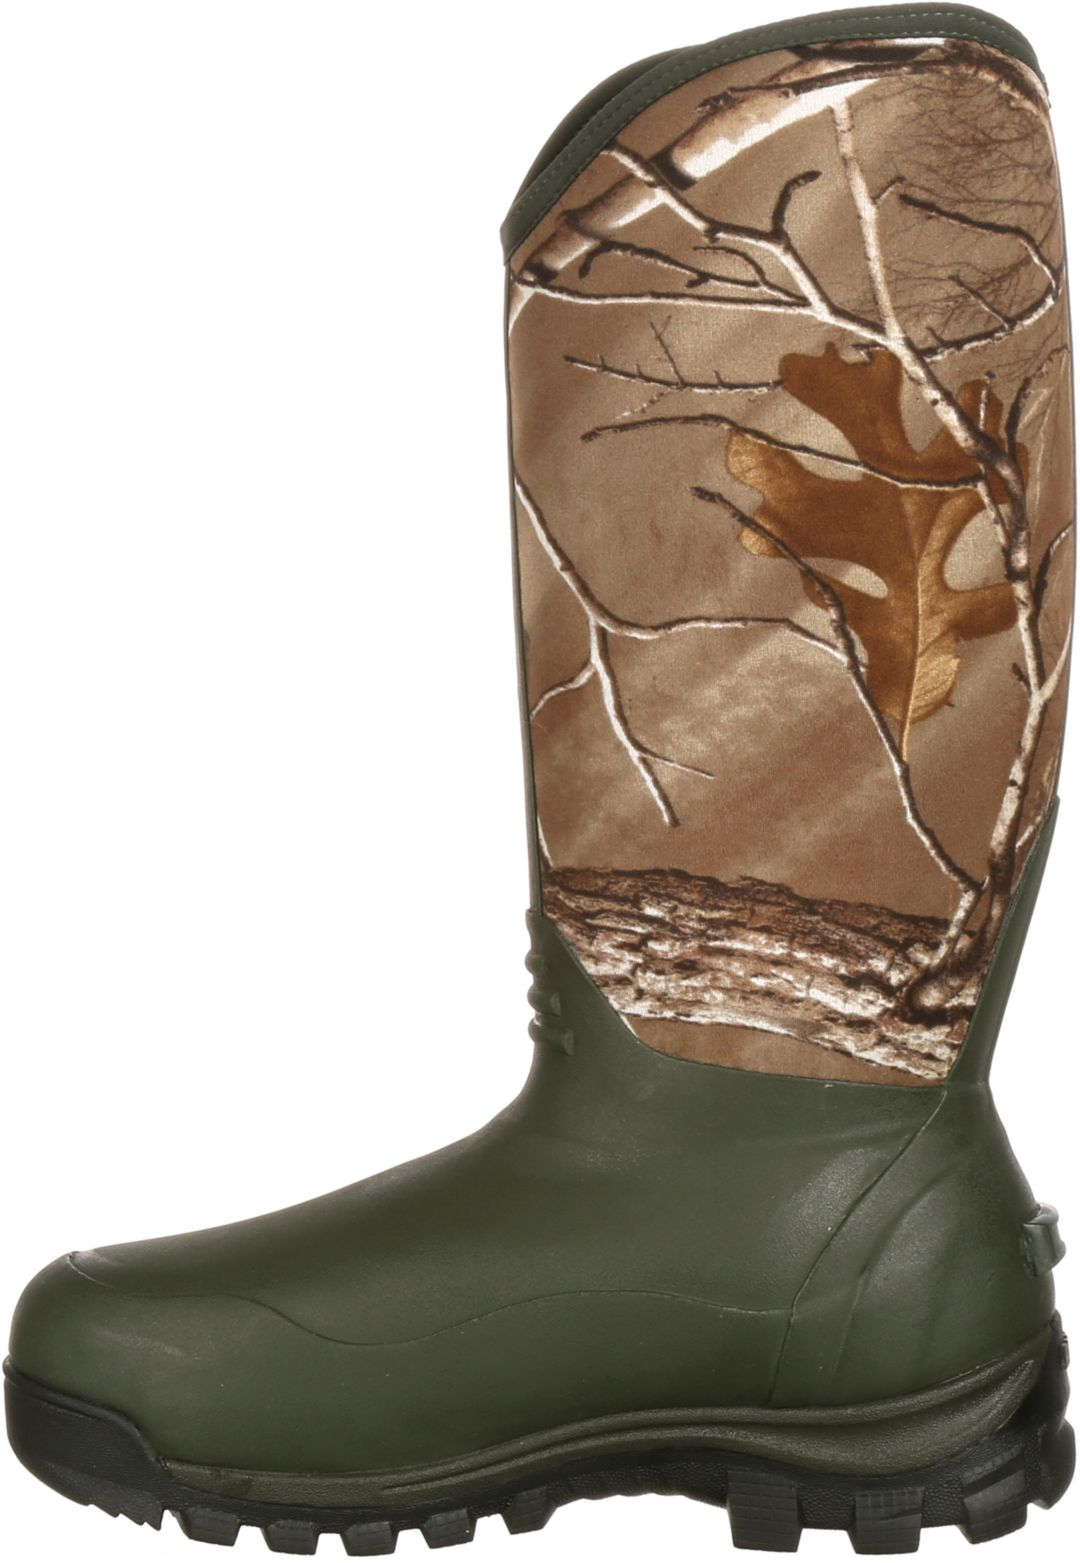 b039b3f5d5a Rocky Men's Core Rubber Realtree Xtra Waterproof 1000g Hunting Boots